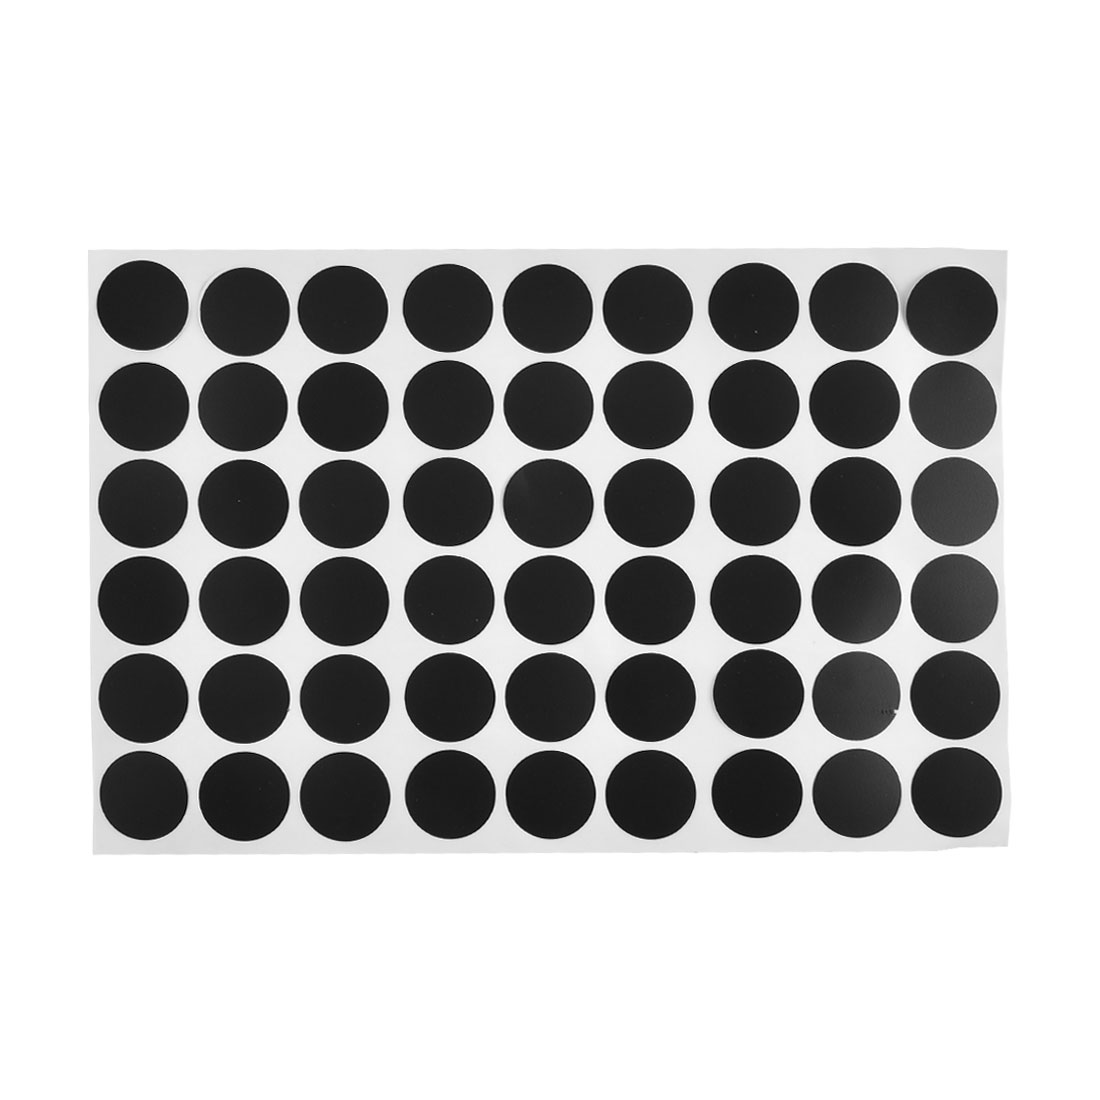 21mm Dia Furniture Self-adhesive Screw Hole Stickers Covers Matte Black 54 in 1